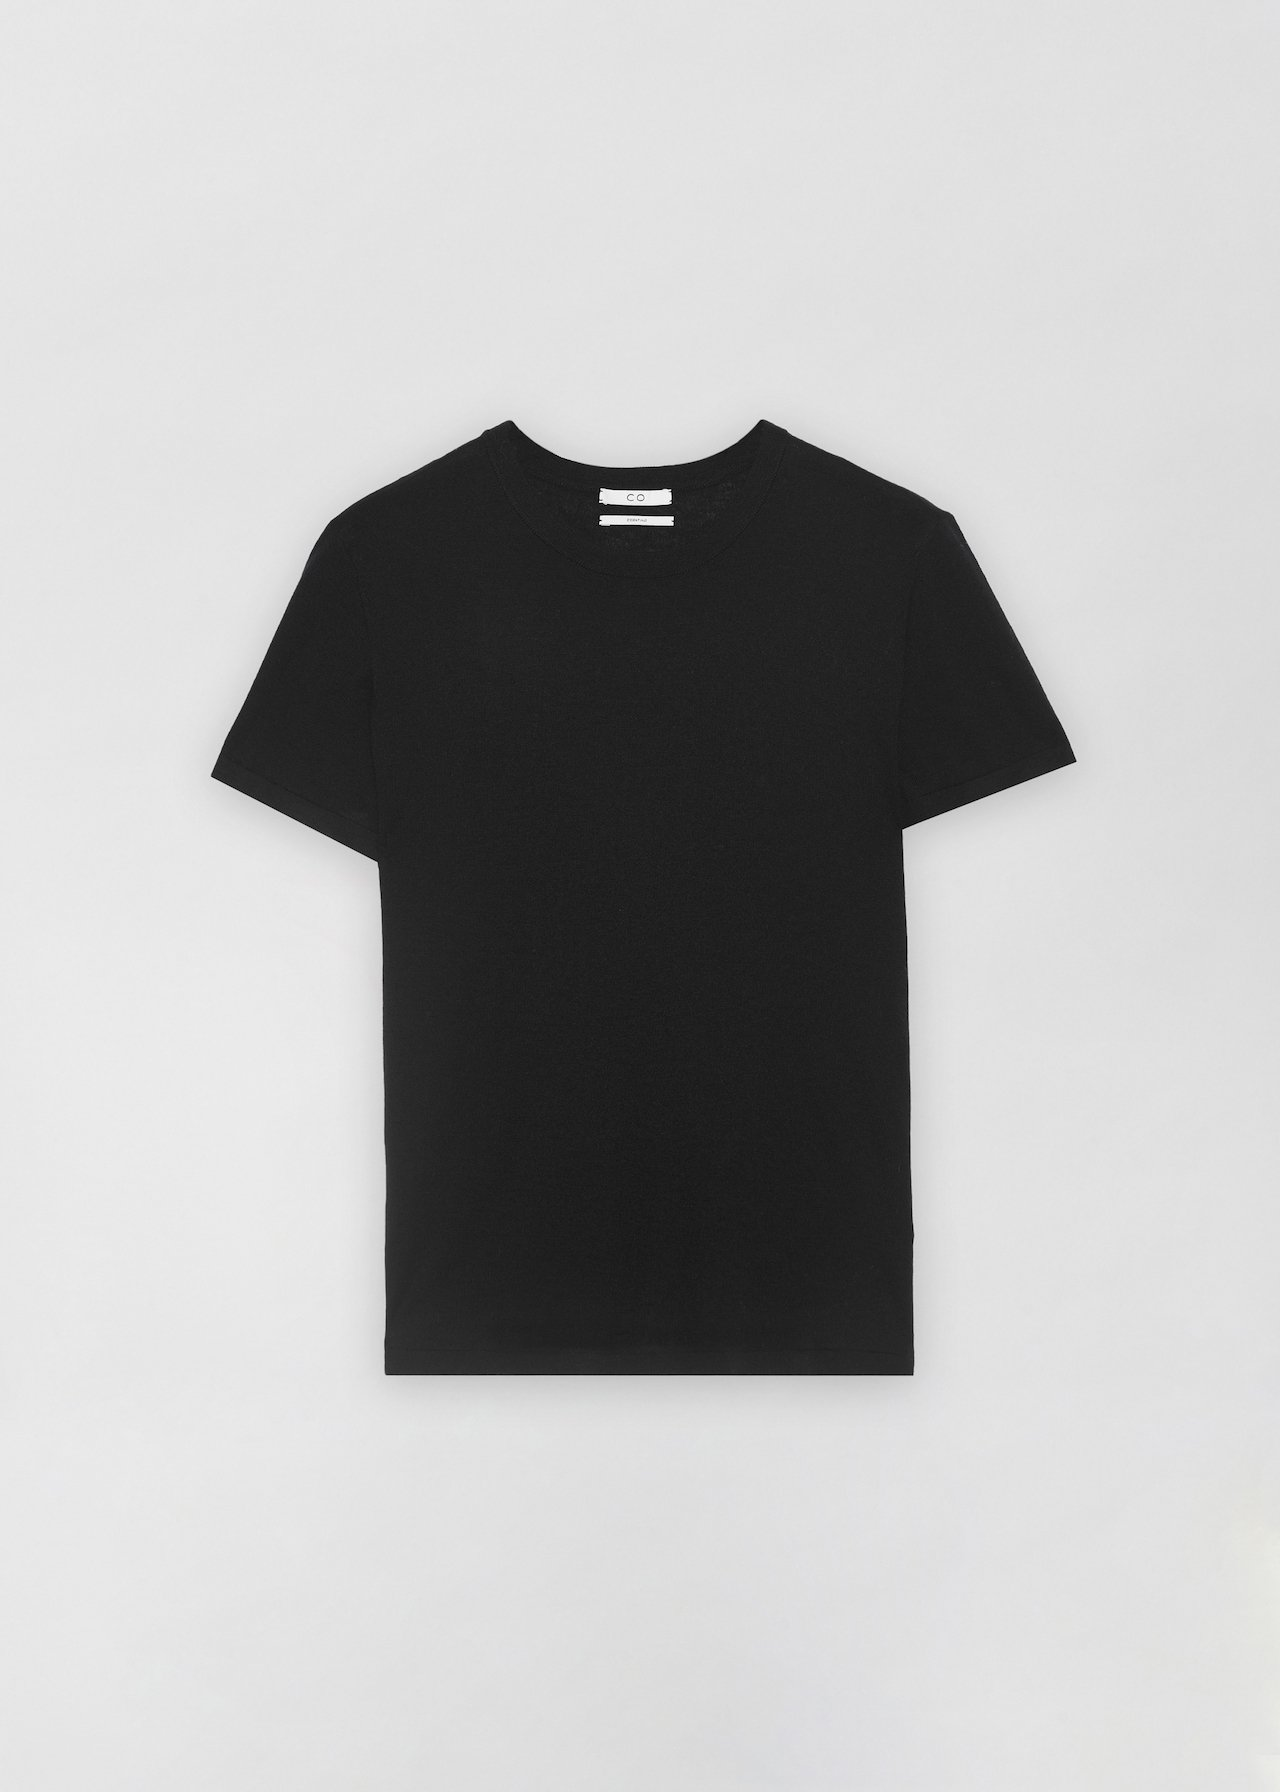 Co Collections Uniform - Cashmere T-Shirt